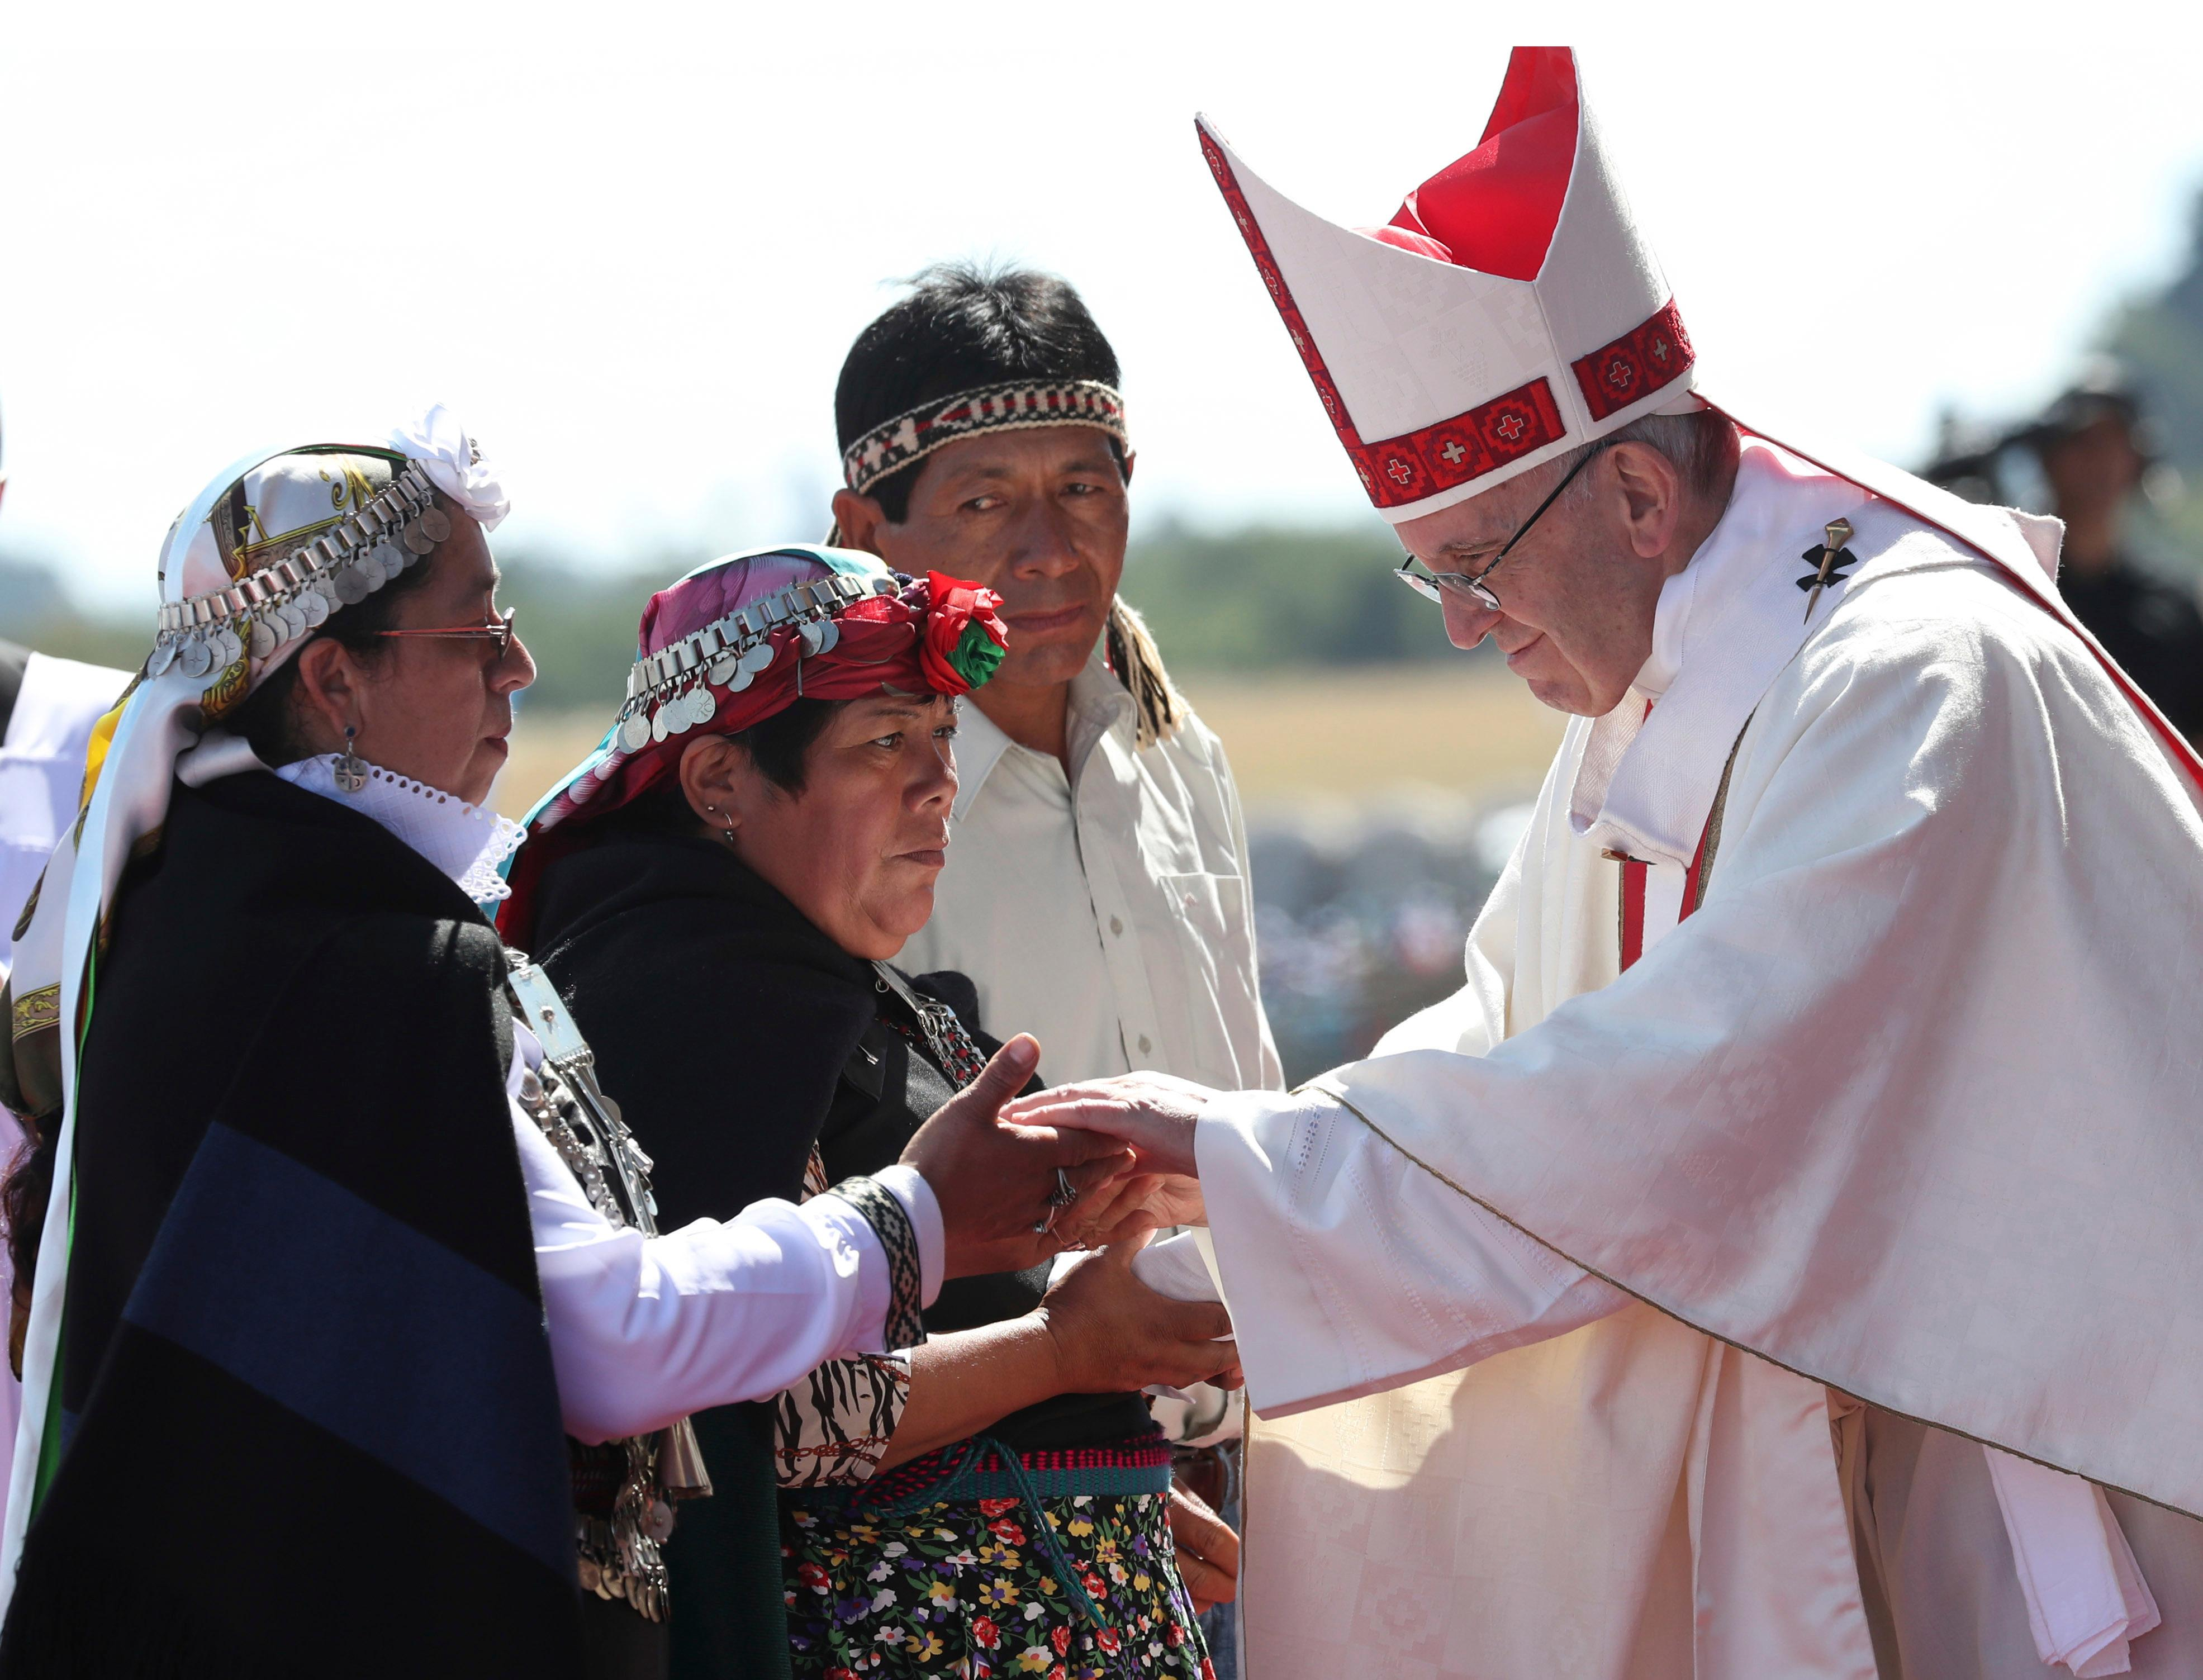 Pope Francis greets Mapuches in an offertory of a Mass at the Maquehue Air Base, in Temuco, Chile, Wednesday, Jan. 17, 2018. Francis is urging the Mapuche people to reject violence in pushing their cause. Francis made the comments Wednesday while celebrating Mass in Temuco. The city is the capital of the Araucania region, where many of Chile's estimated 1 million people of Mapuche descent live. (AP Photo/Alessandra Tarantino)